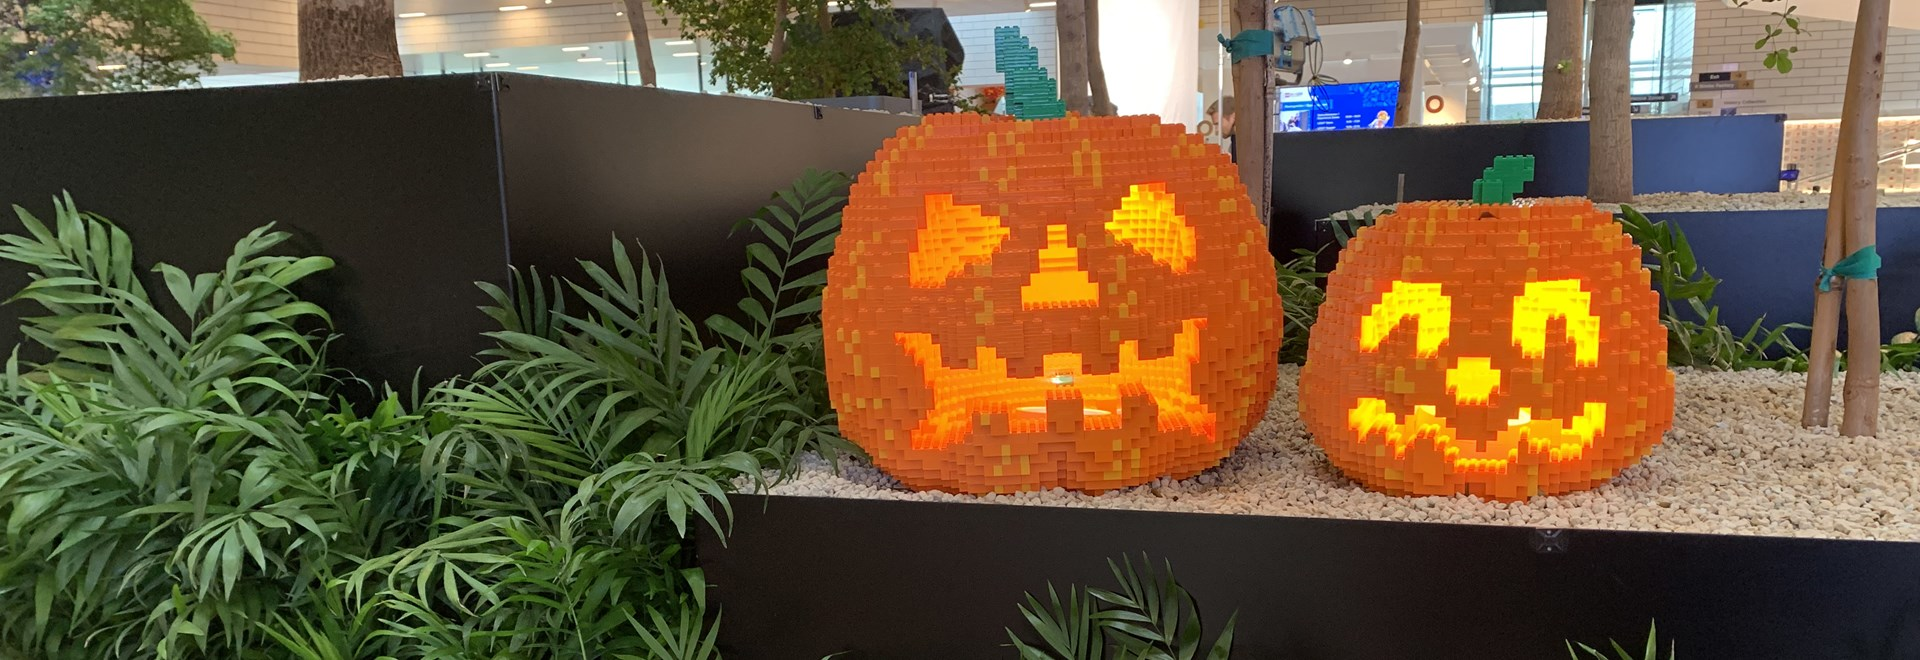 Join us for Halloween in LEGO House 9 oct. - 1 nov.